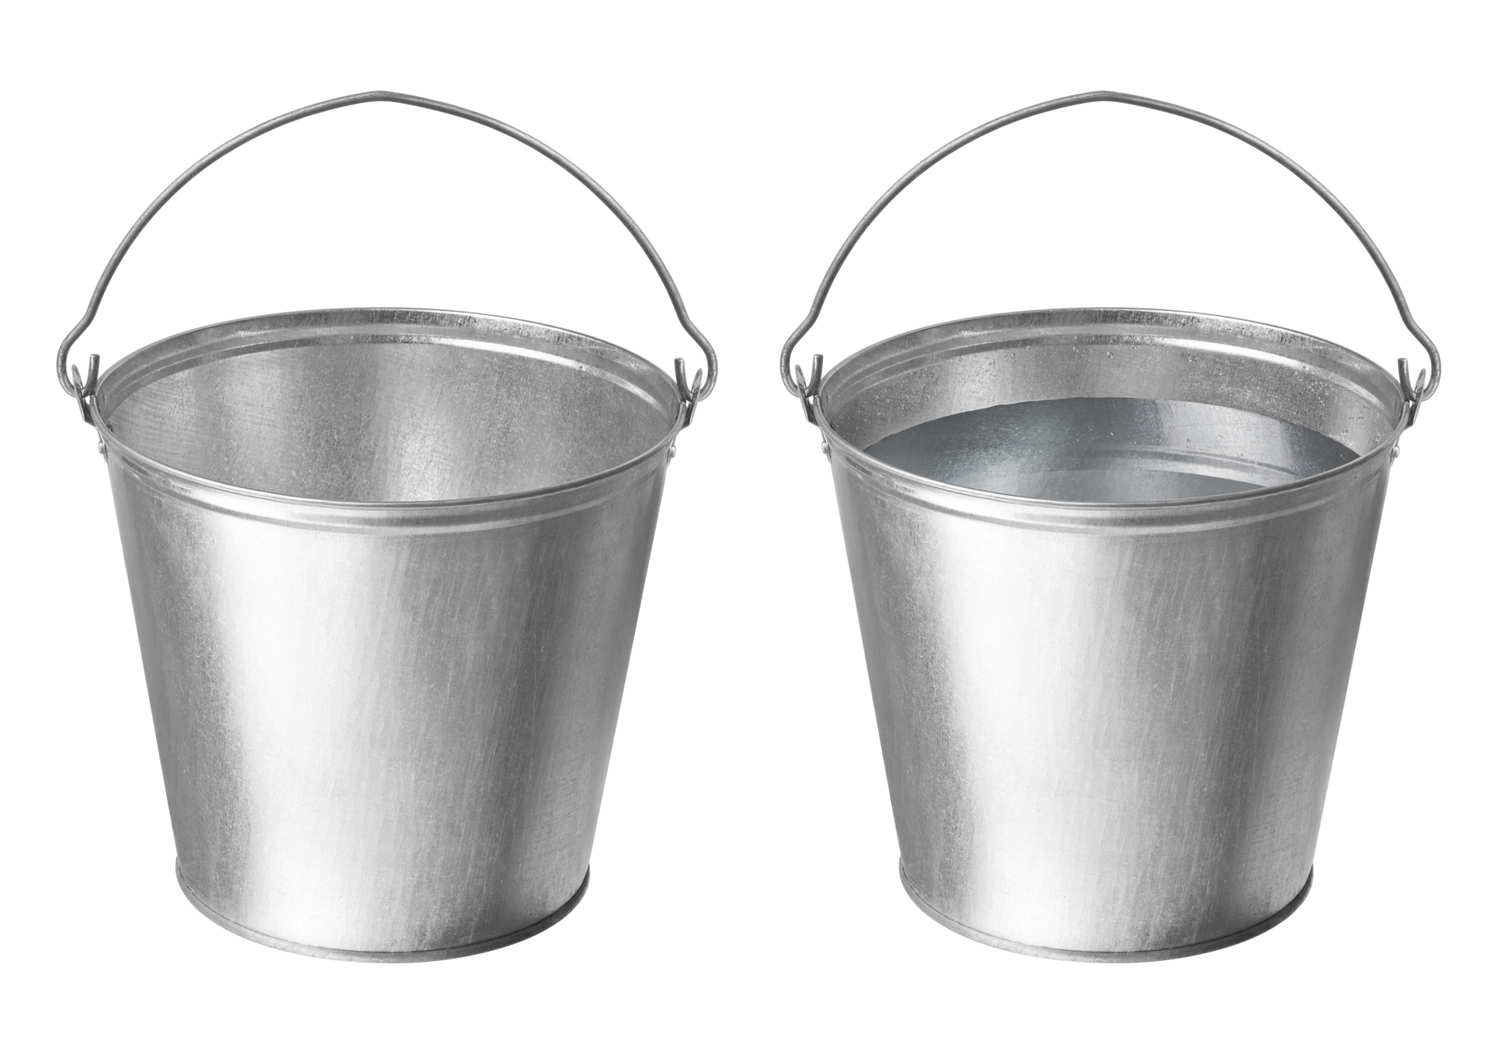 saturation vs deficiency fill your empty buckets core advantage